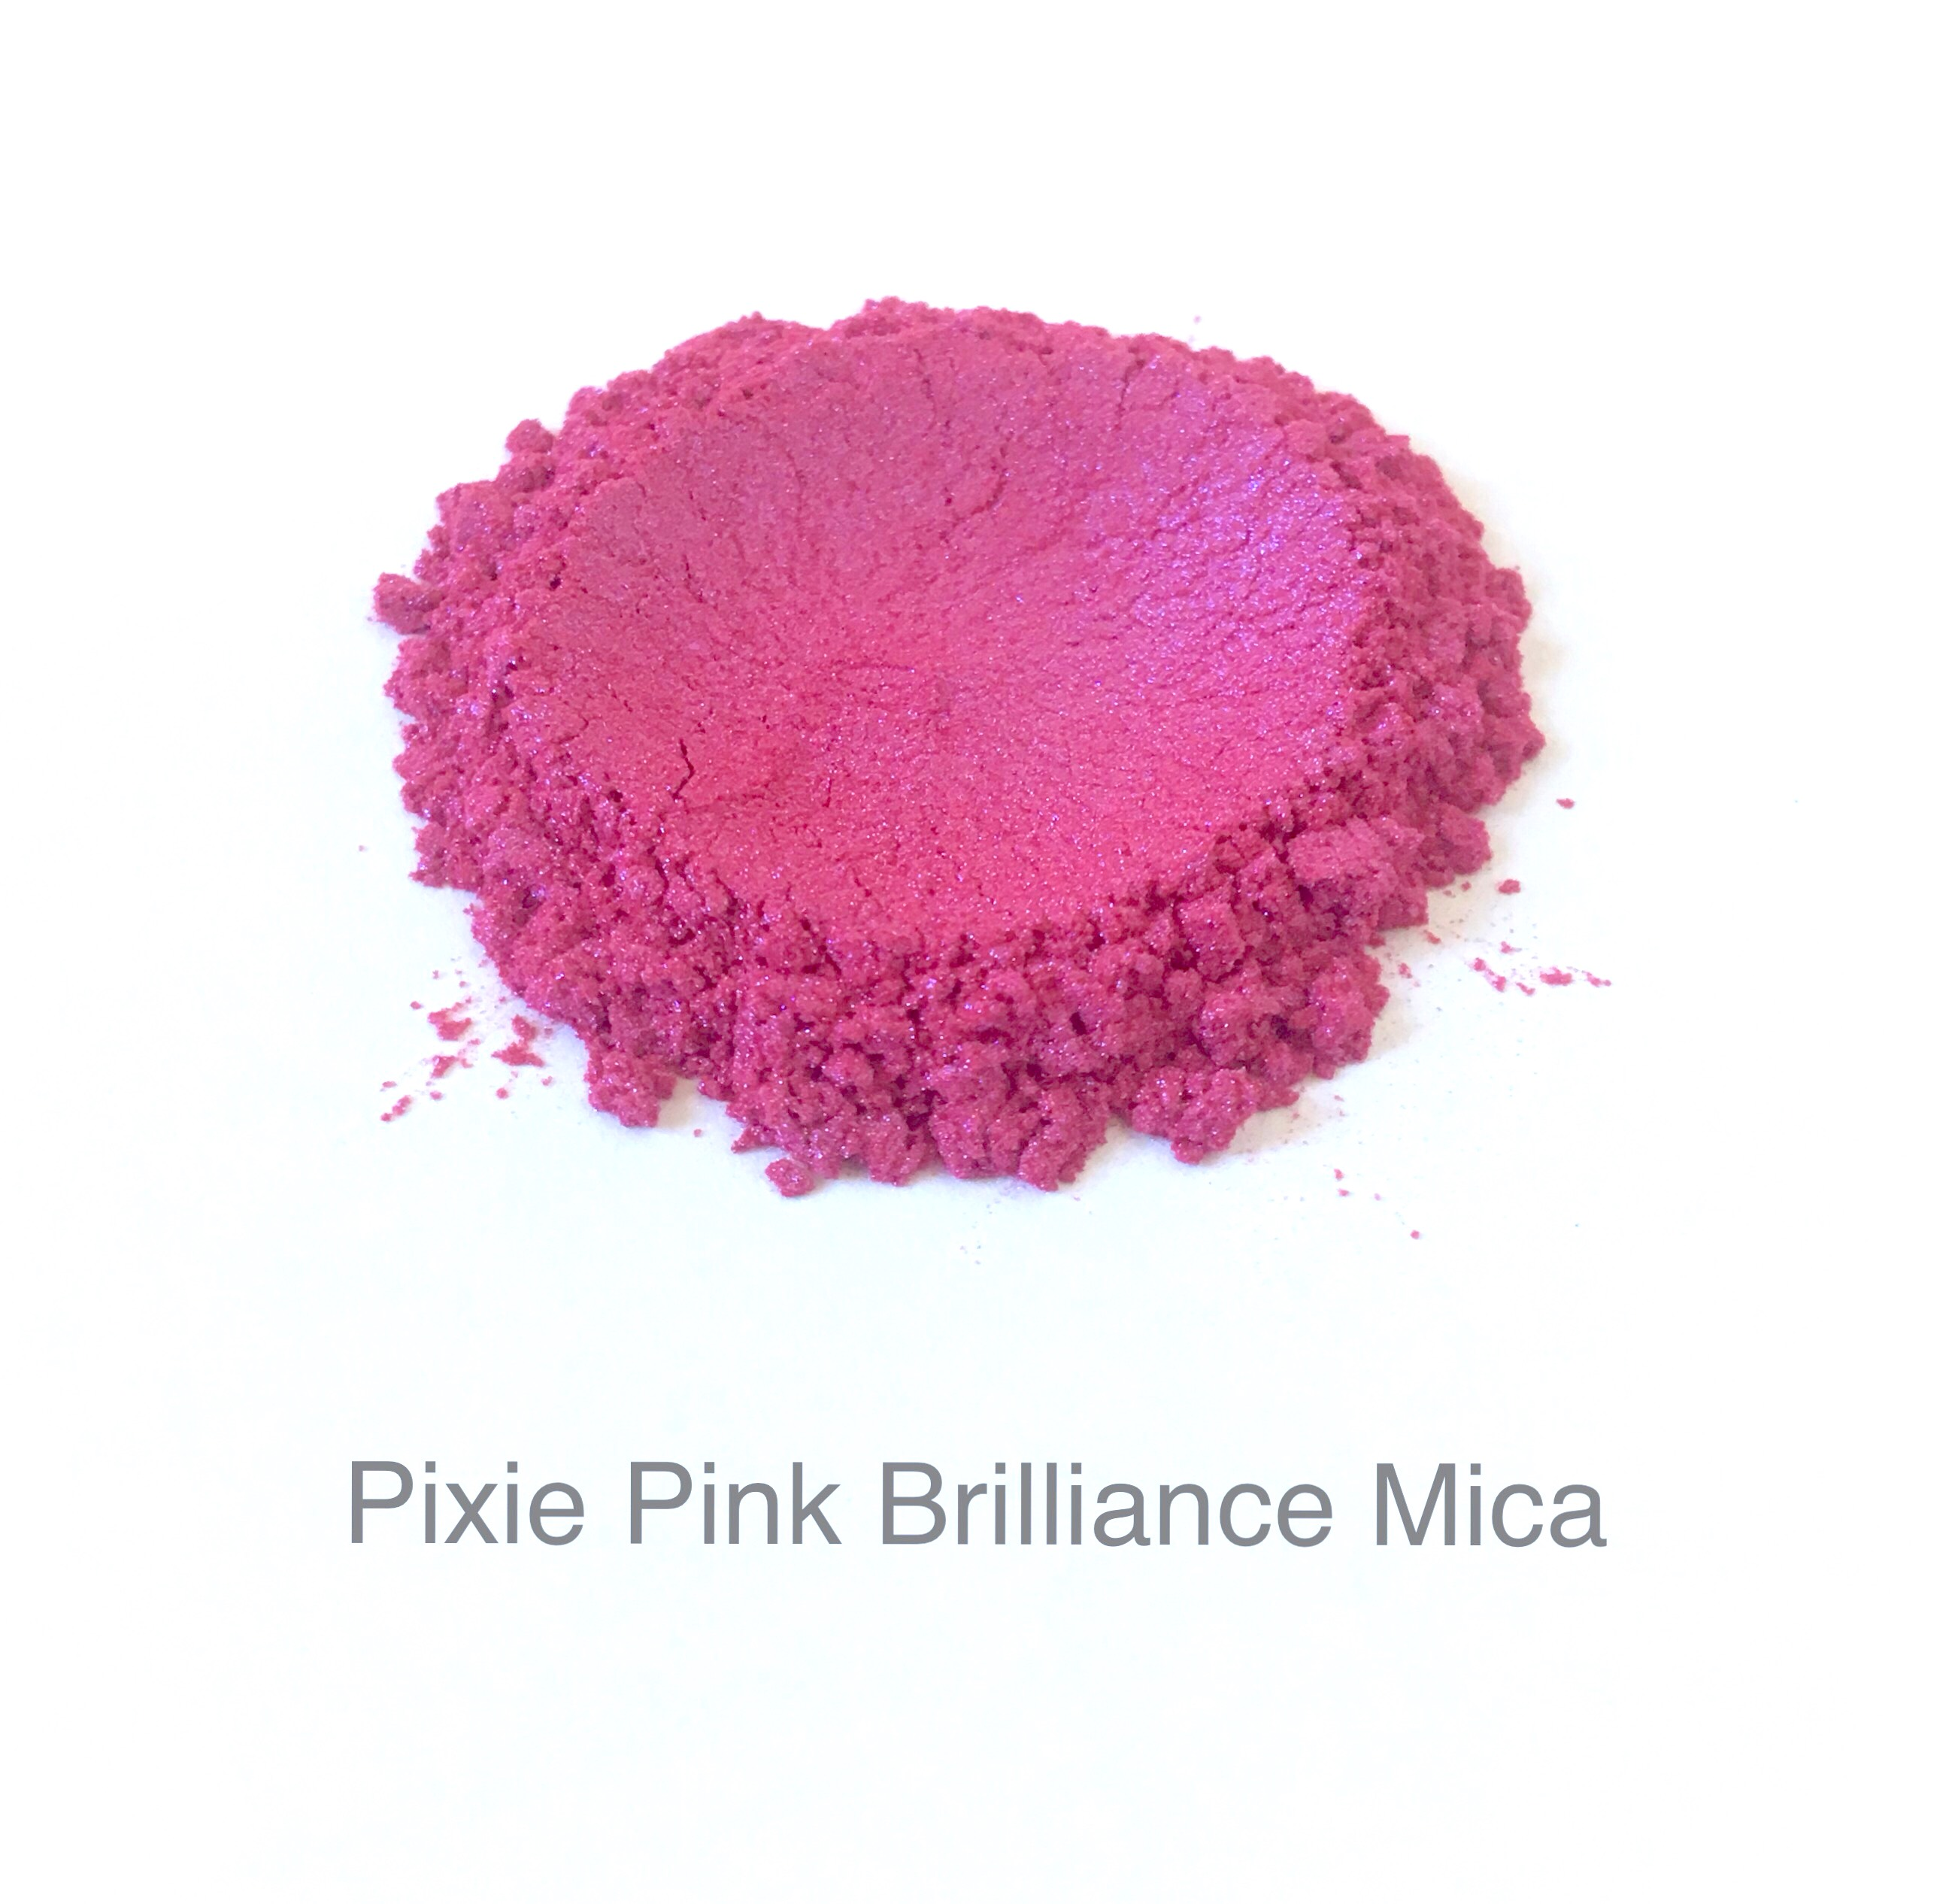 Pixie Pink Brilliance Mica Micas And More